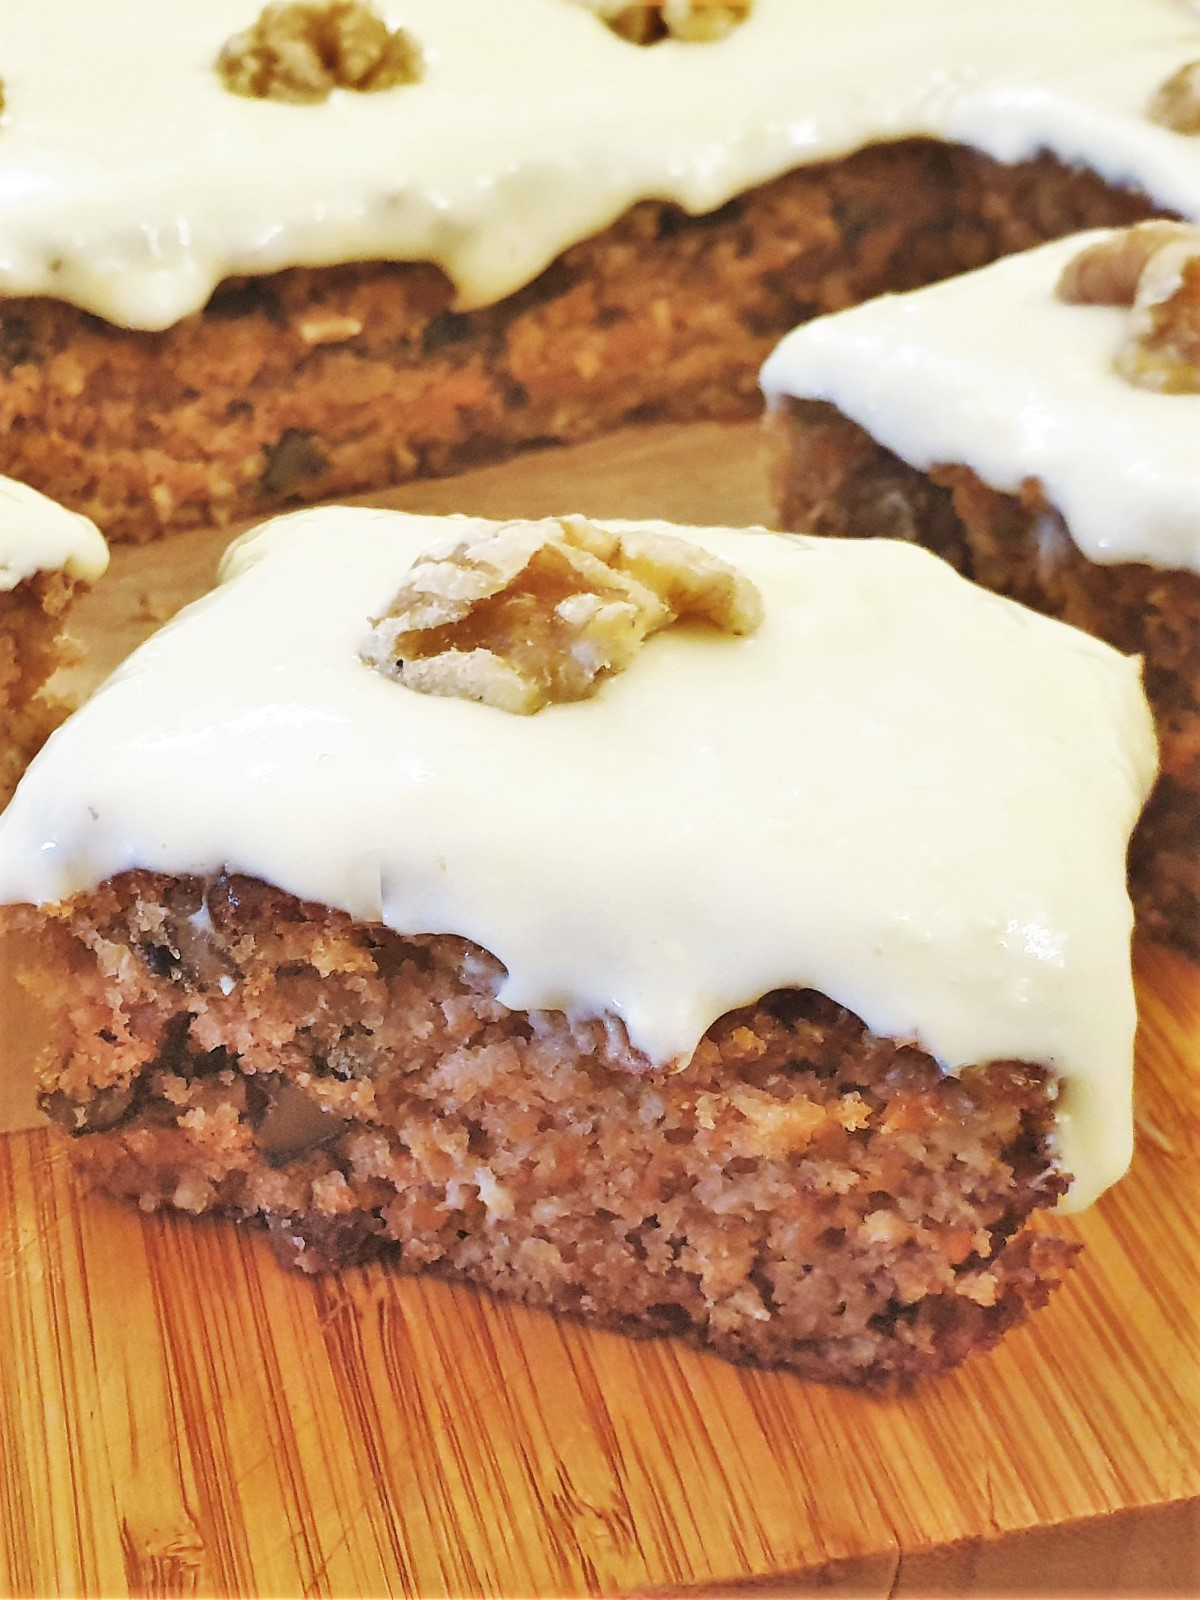 Carrot and walnut cake topped with frosting and a walnut, showing the texture.